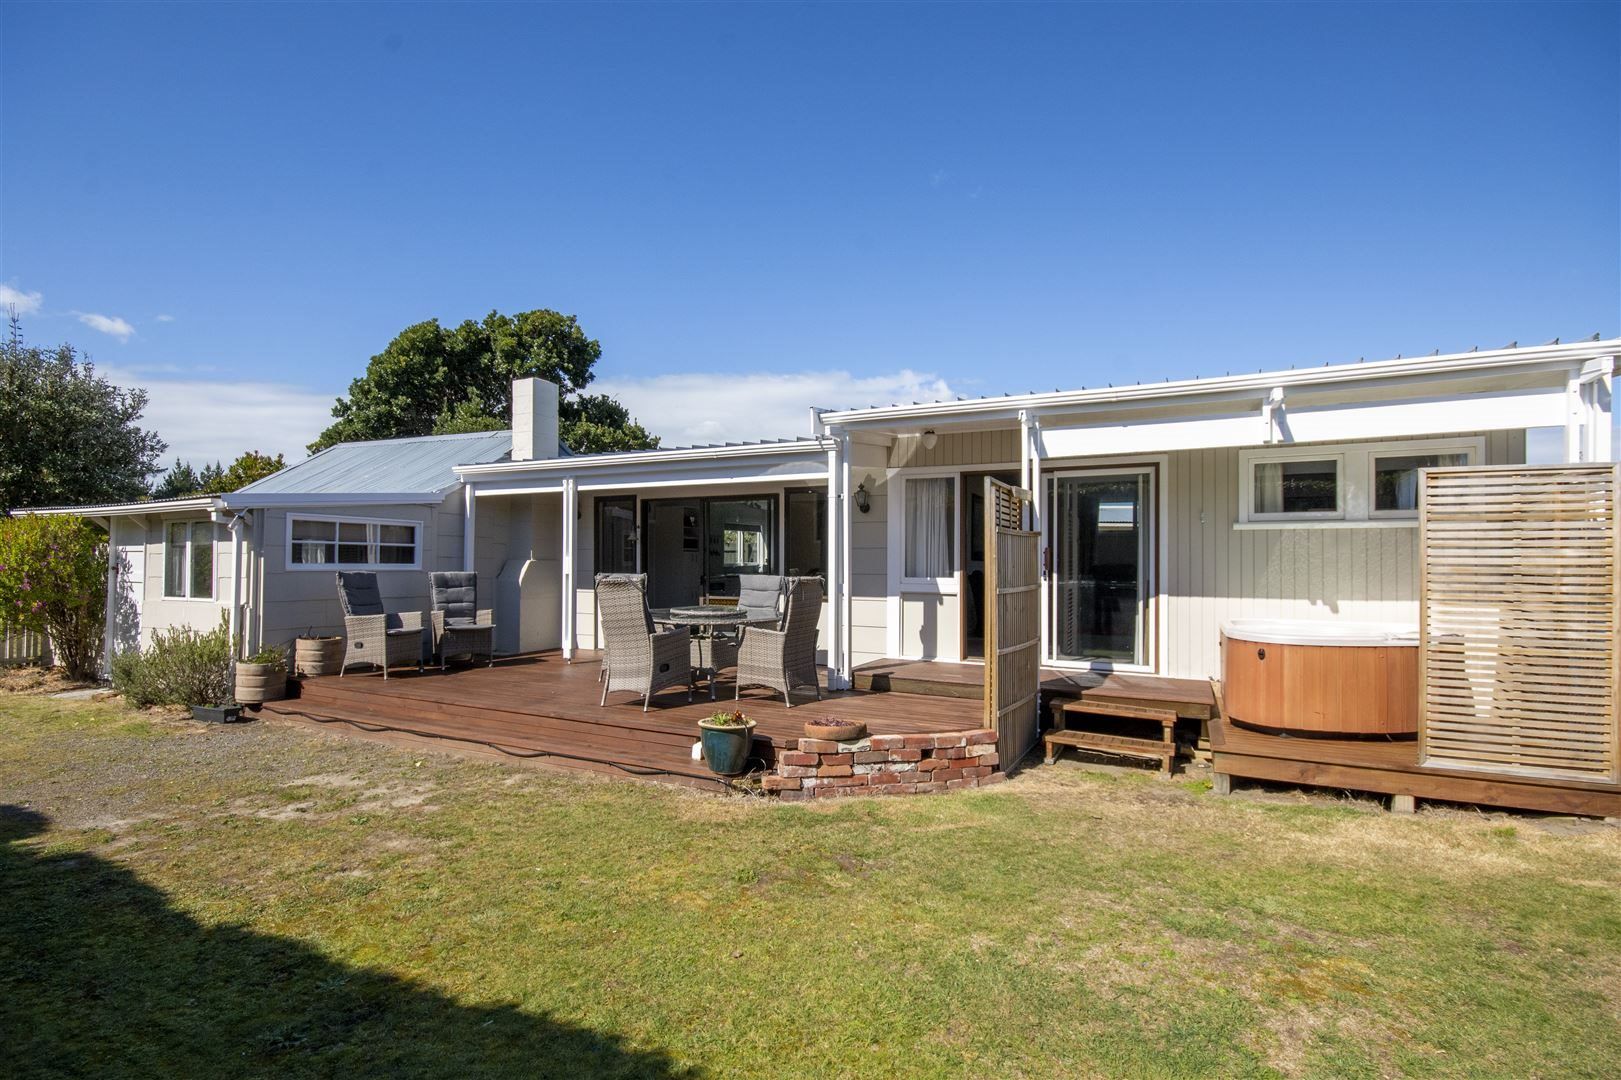 Harcourts real estate agent Lisa Tippen sold this bach at 23 Reserve Rd, Waikuku Beach, for $406...